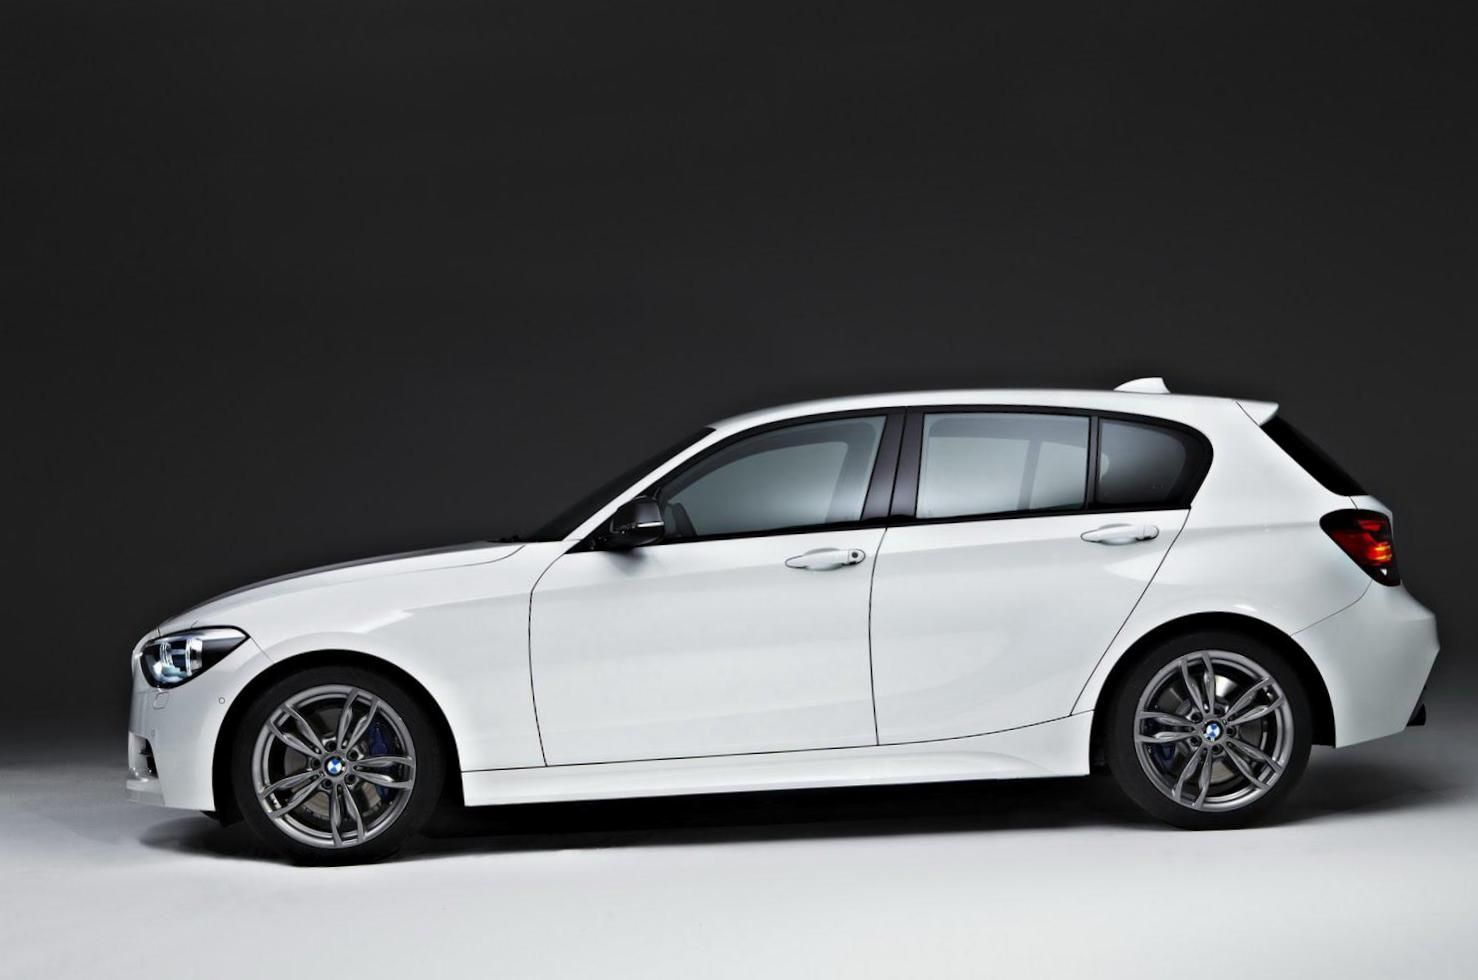 bmw 1series hatchback bmw pinterest hatchbacks bmw and cars